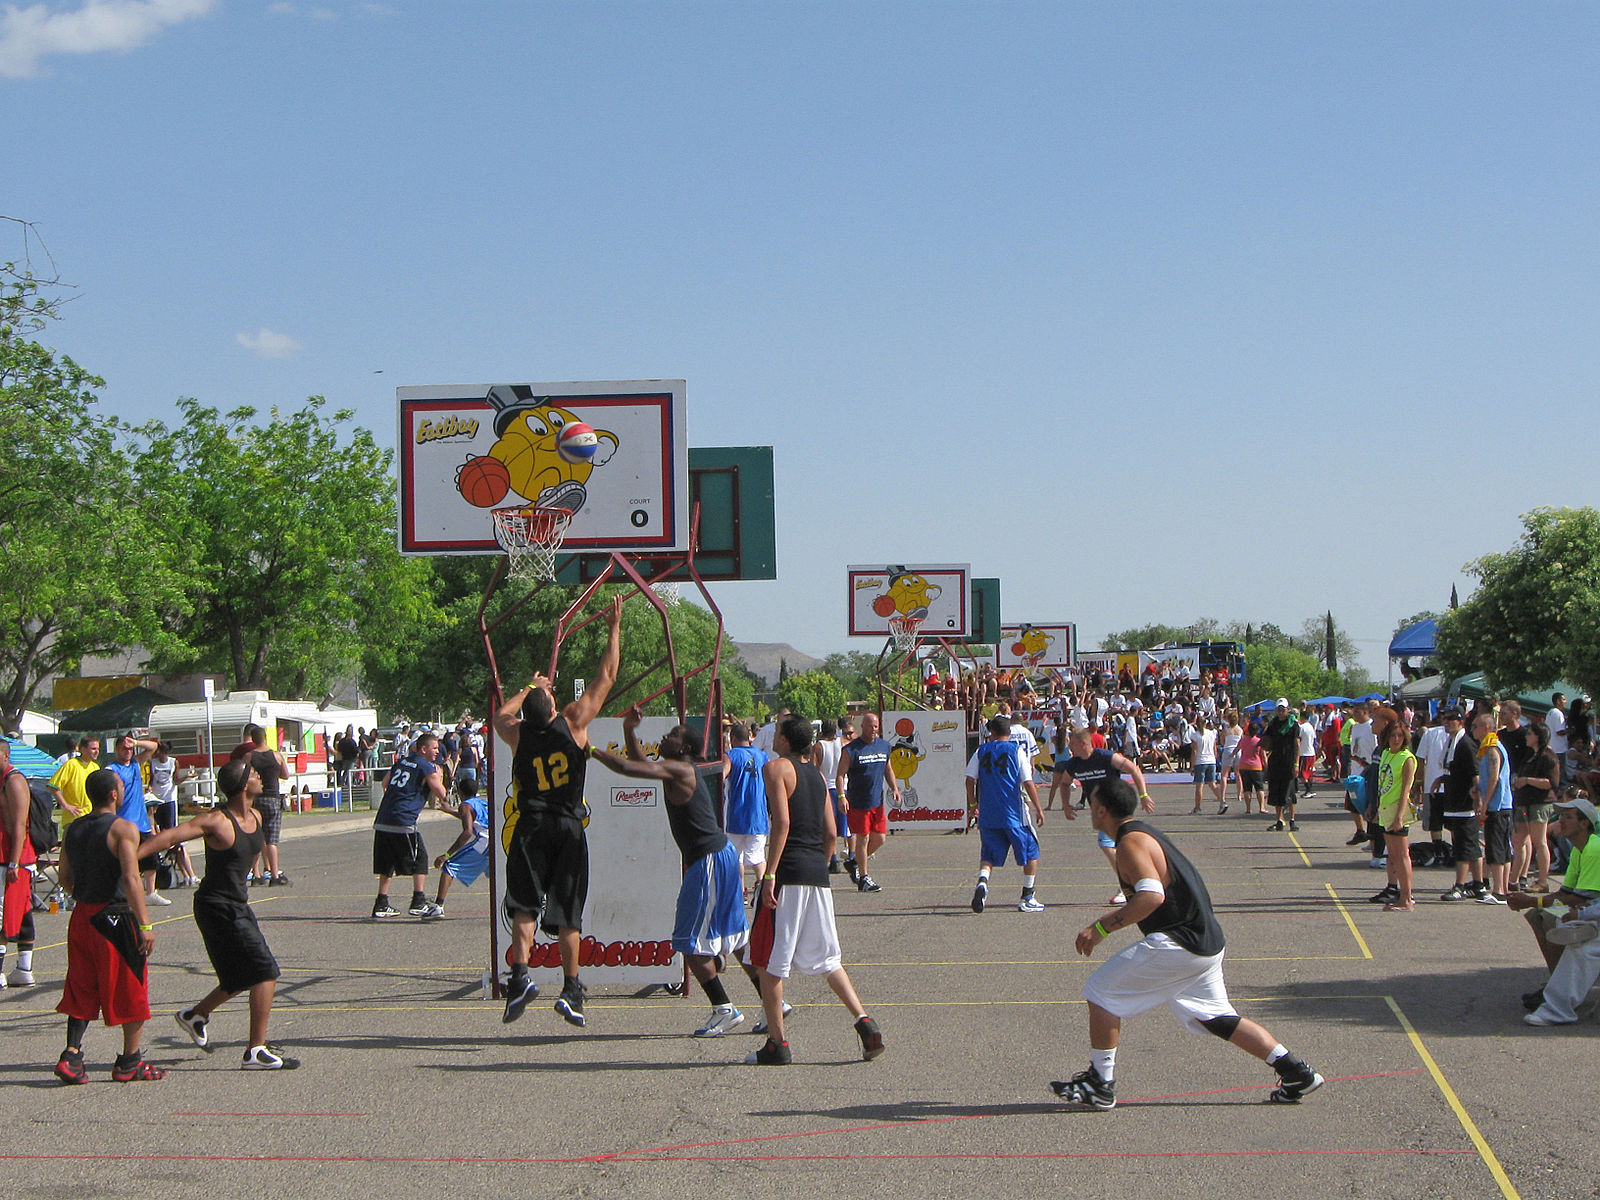 Recreational amenities can also play host to popular community events which increase the visibility and popularity of a city. Source:  Wikimedia Commons